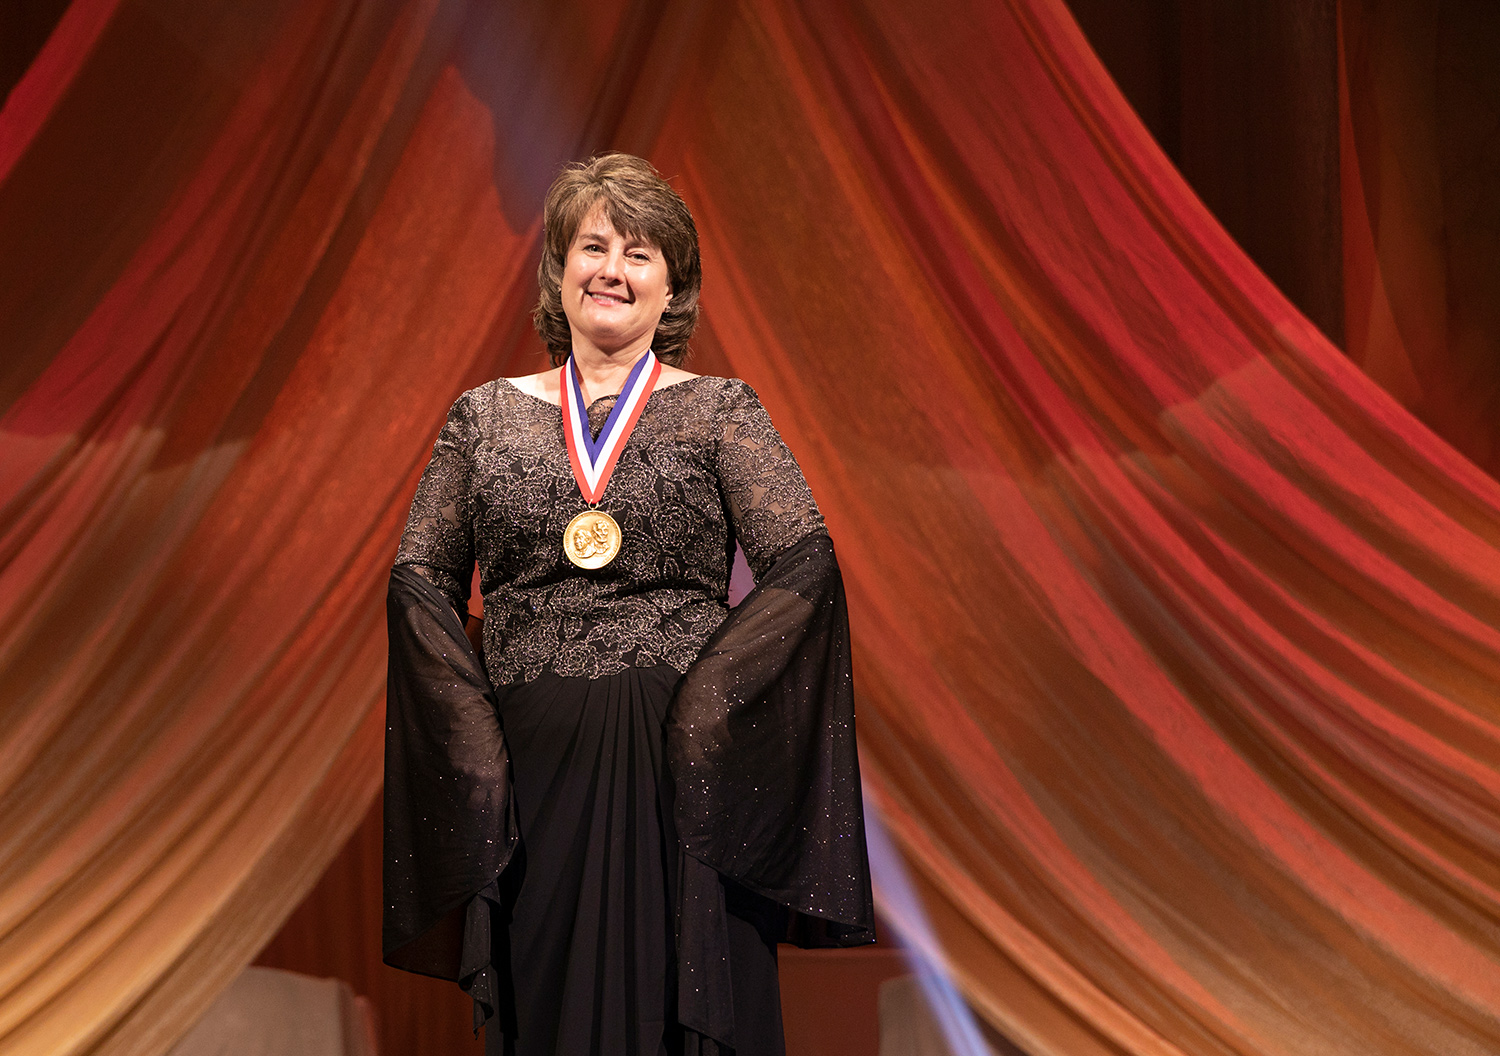 Jackie Quinn smiles with a medal on at the 2018 National Inventor Hall of Fame Induction Ceremony